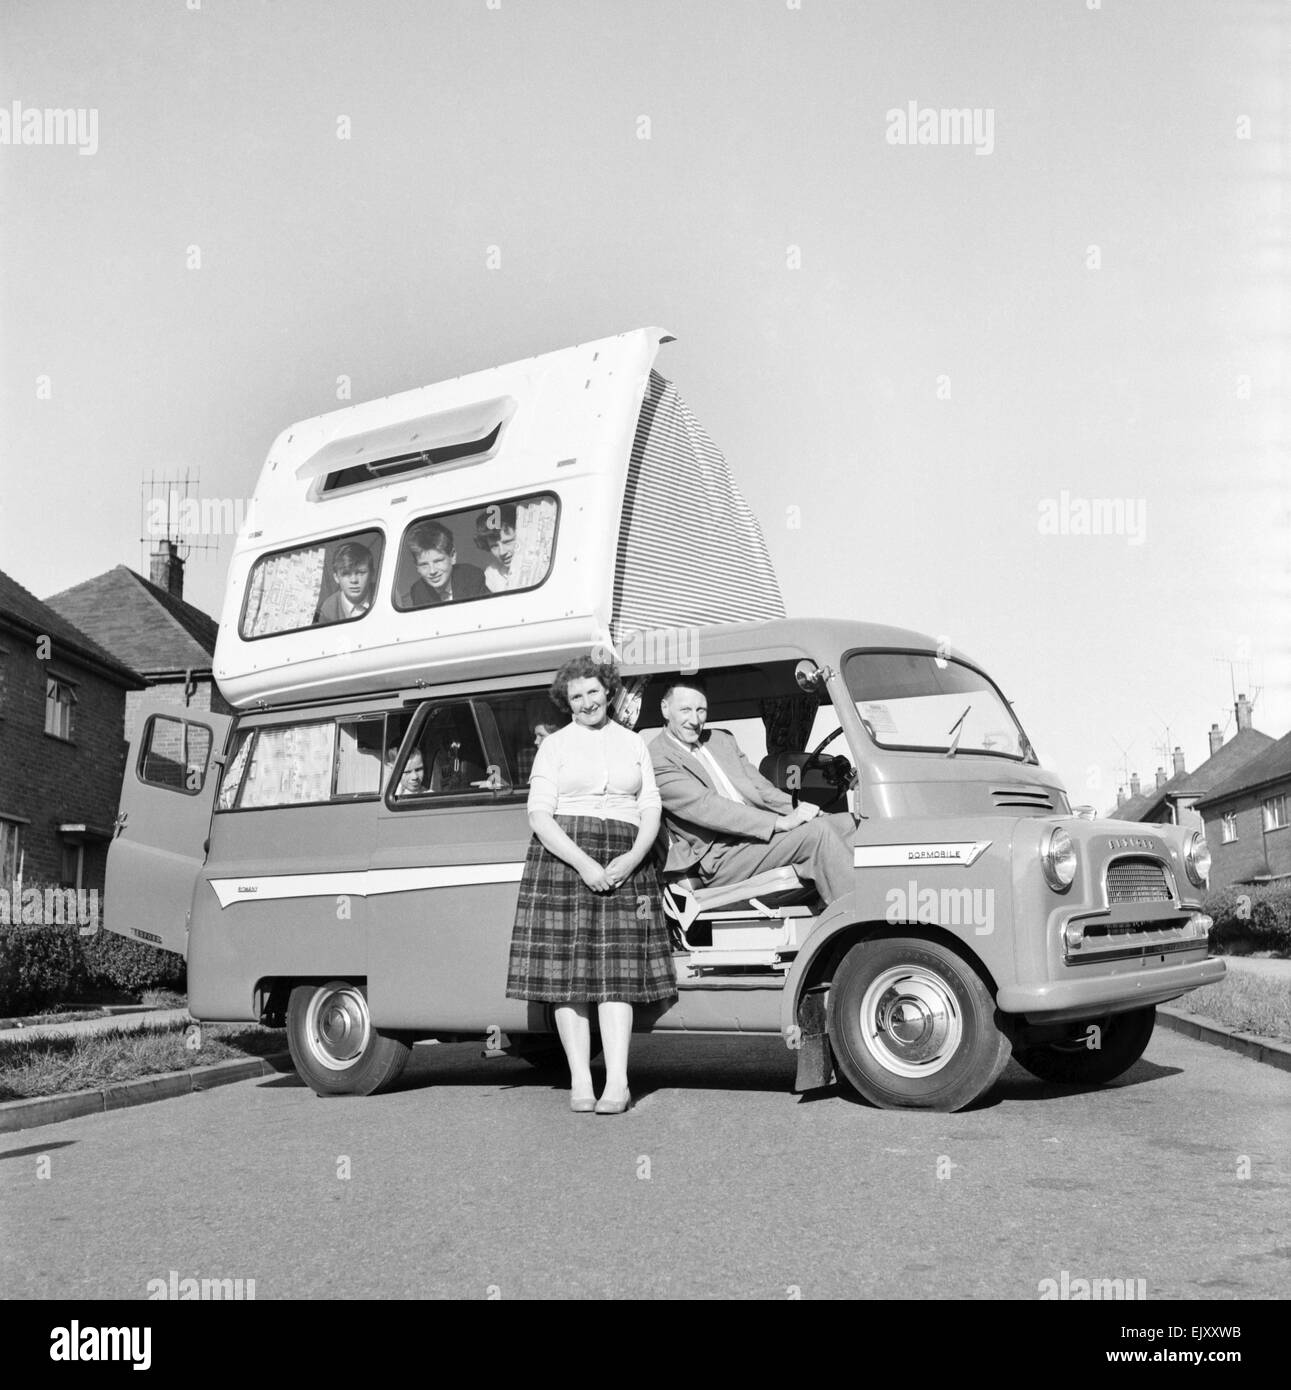 Holidays: Camping. The Astley family seen here getting to grips with their new Dormobile camper van. 1960. - Stock Image